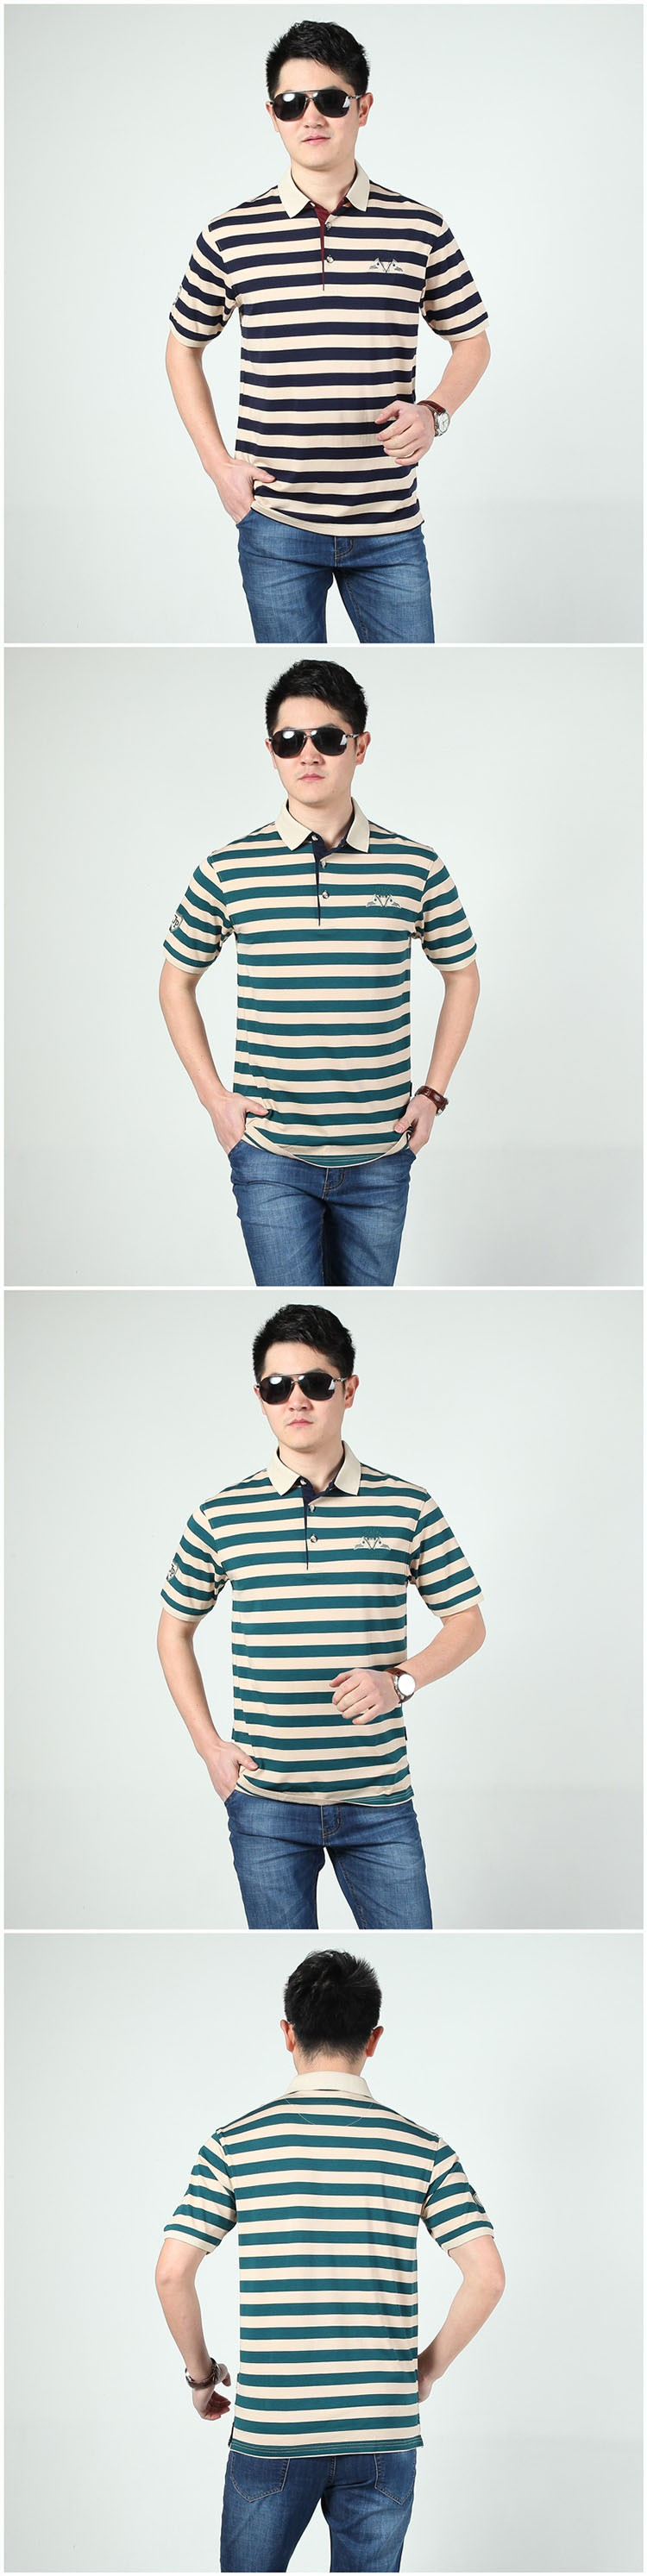 Polo Shirts Men Fashion Brand Striped Cotton Polos Slim Fit Summer Short Sleeves Male Casual Shirts Top Quality Plus Size 3XL (8)